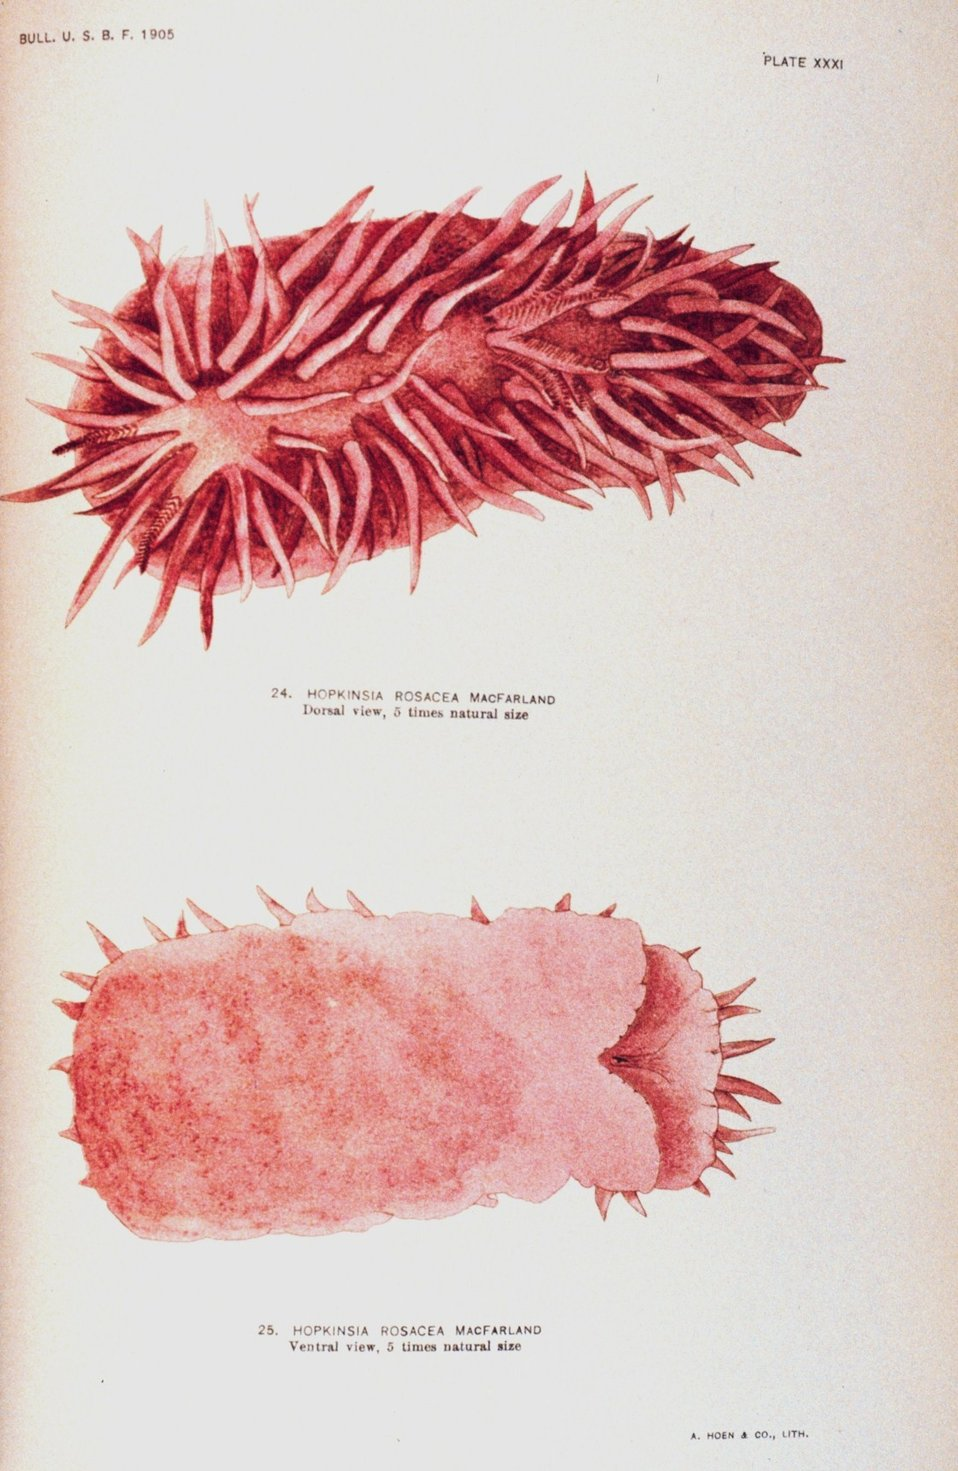 Nudibranch.  24 and 25.  Hopkinsia rosacea MacFarland - dorsal and lateral views .  Views painted by Anna B. Nash of the Hopkins Seaside Laboratory.  In: 'Opisthobranchiate Mollusca from Monterey Bay ....', Bulletin of the Bureau of Fisheries, Volume 2